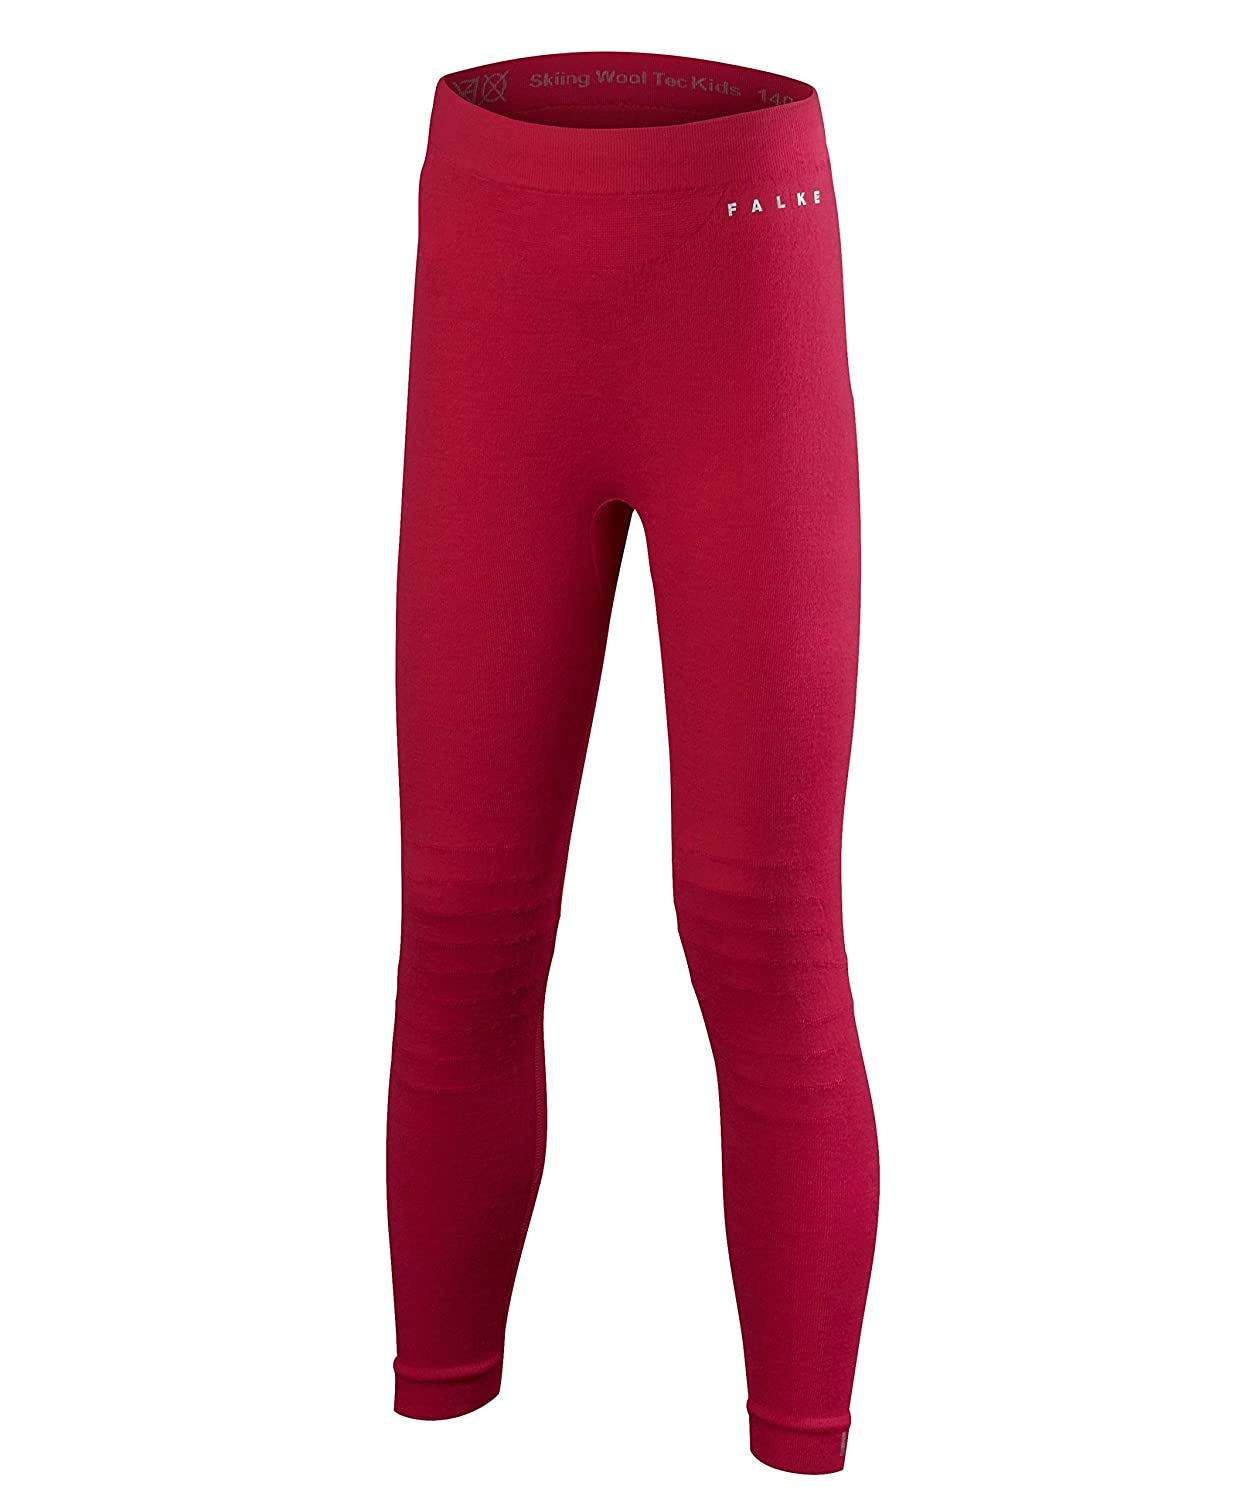 FALKE Kinder Unterwäsche Ski Wool Tech Long Tights